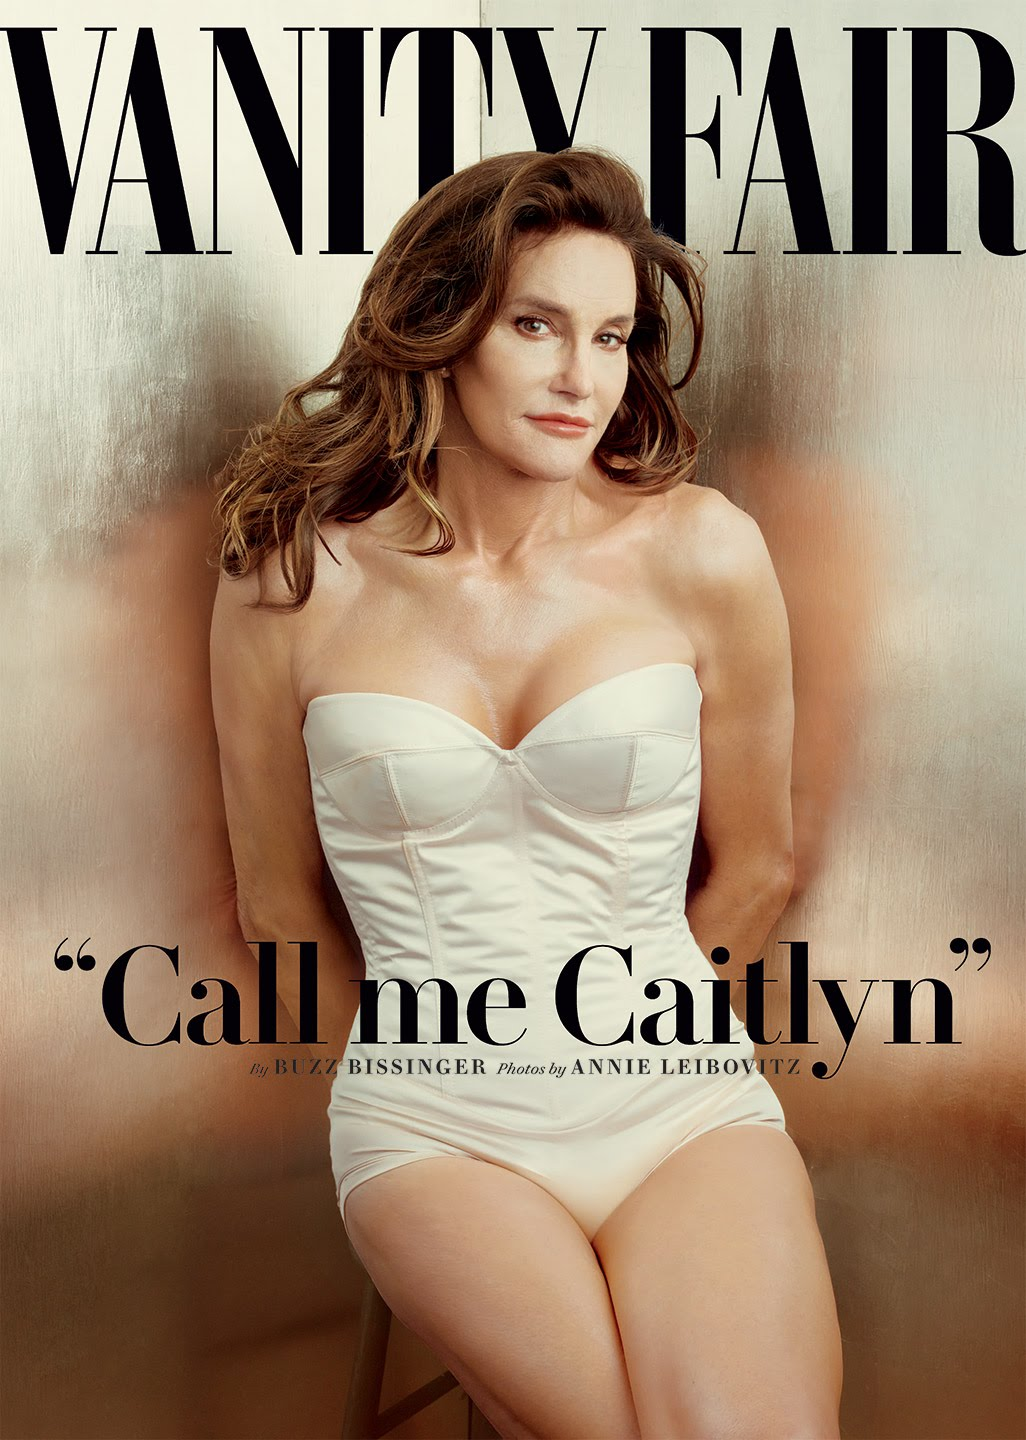 Caitlyn Jenner Plans Most Daring Photoshoot Yet maxresdefault 2 2